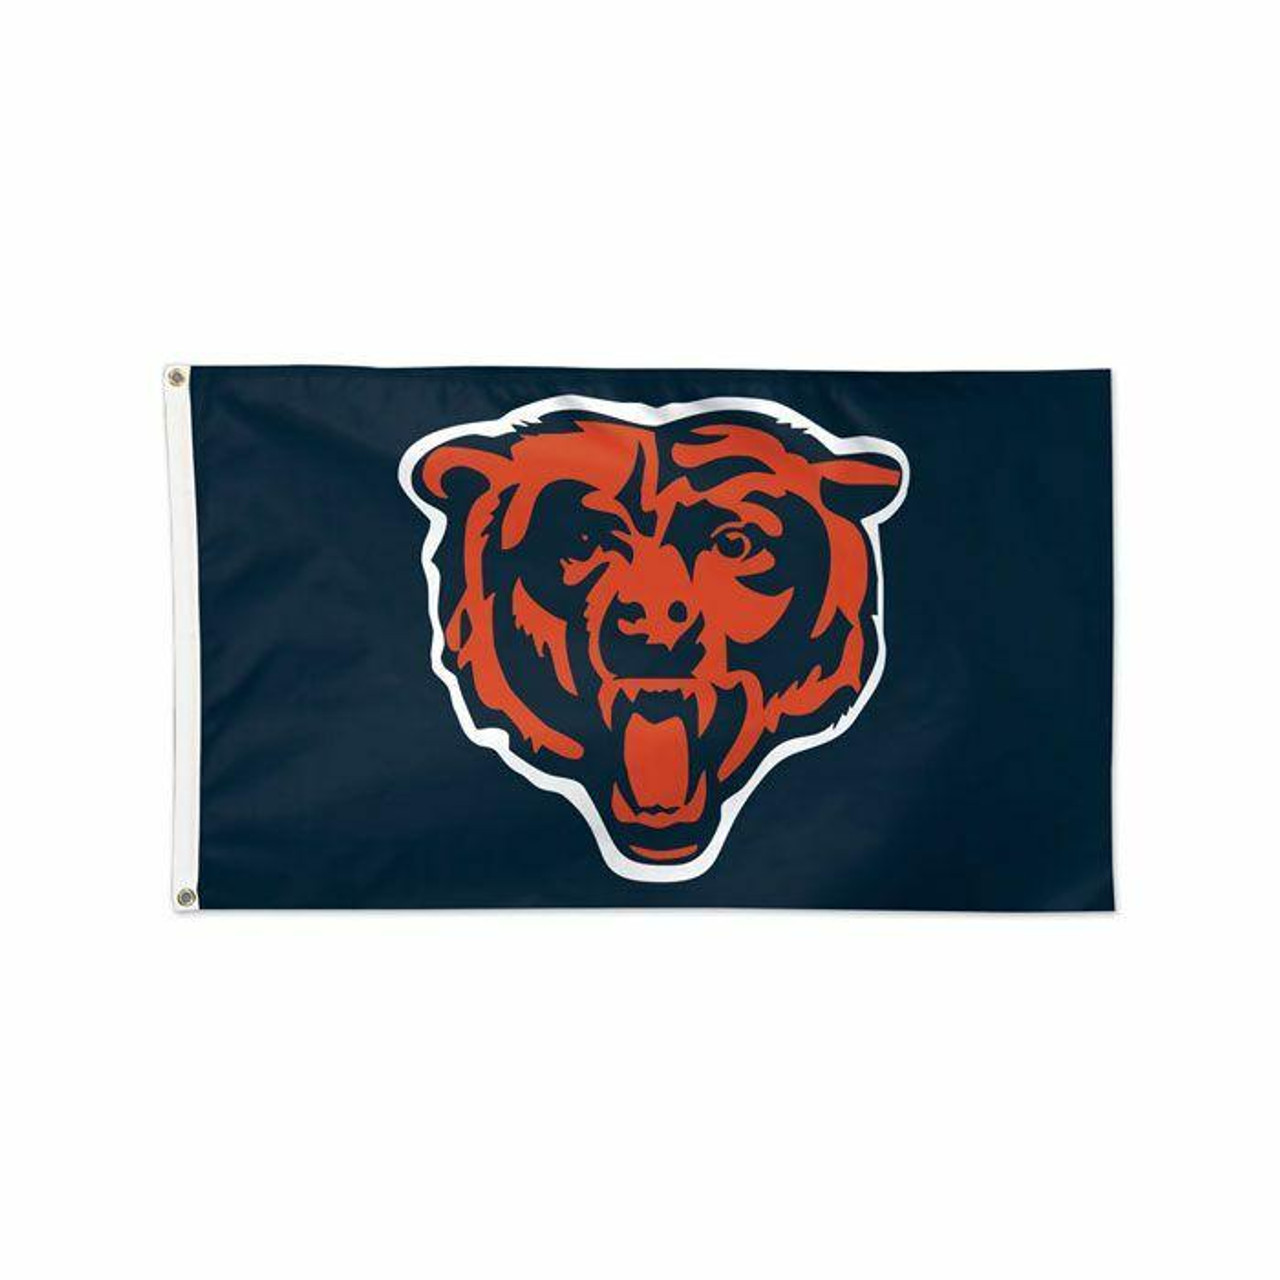 The Chicago Bears flag has a navy blue background and an orange and blue bear face in the center